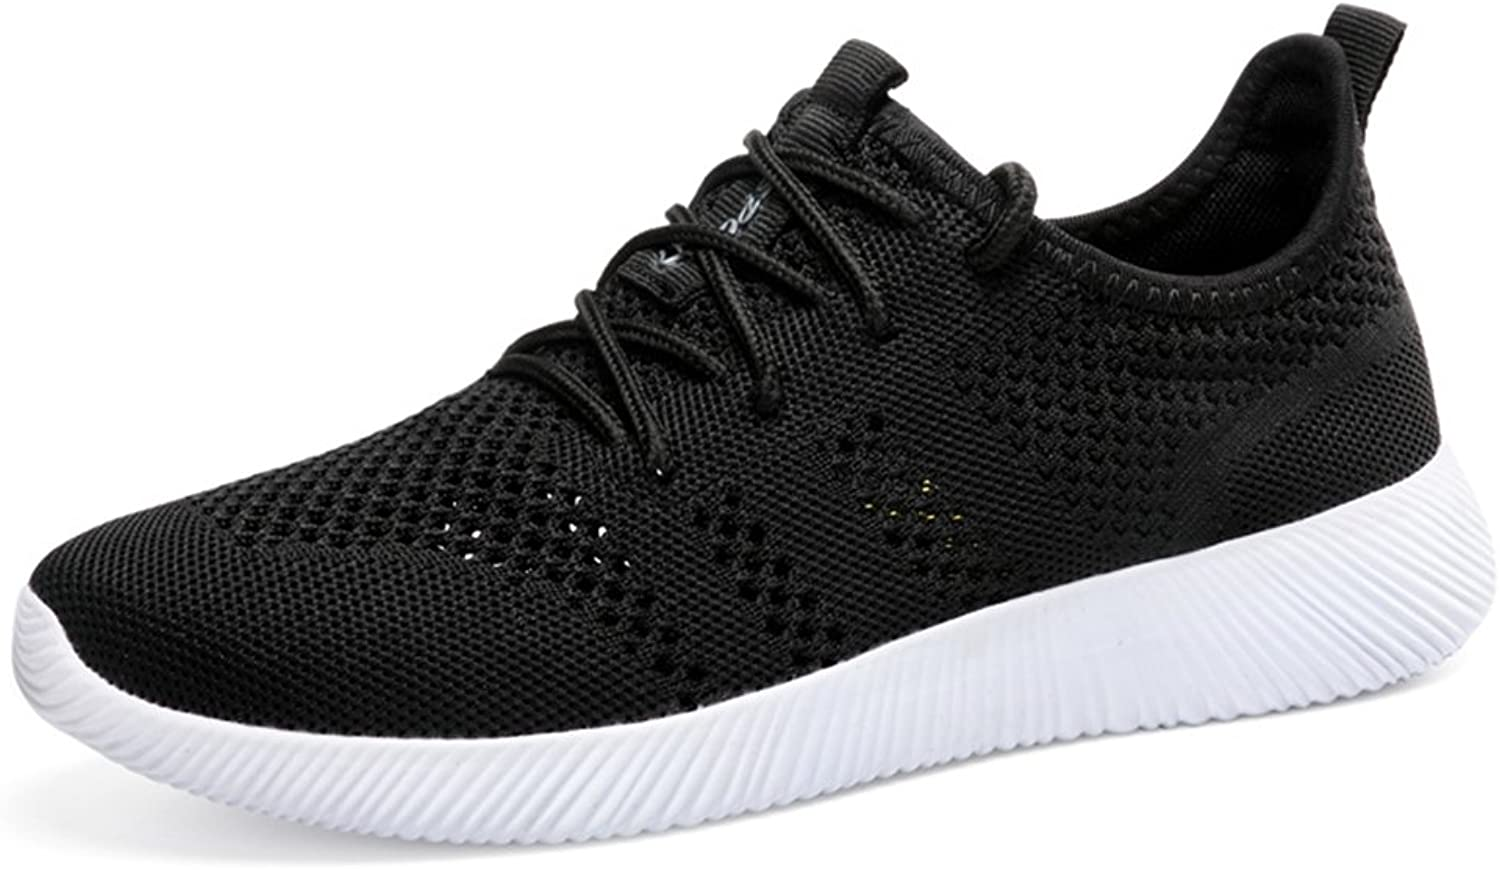 Womens's shoes Casual Sneakers,Air Trainers Fitness Flats,Hollow Summer Light Soles Casual shoes,for Sports Trends, Extreme Challenges